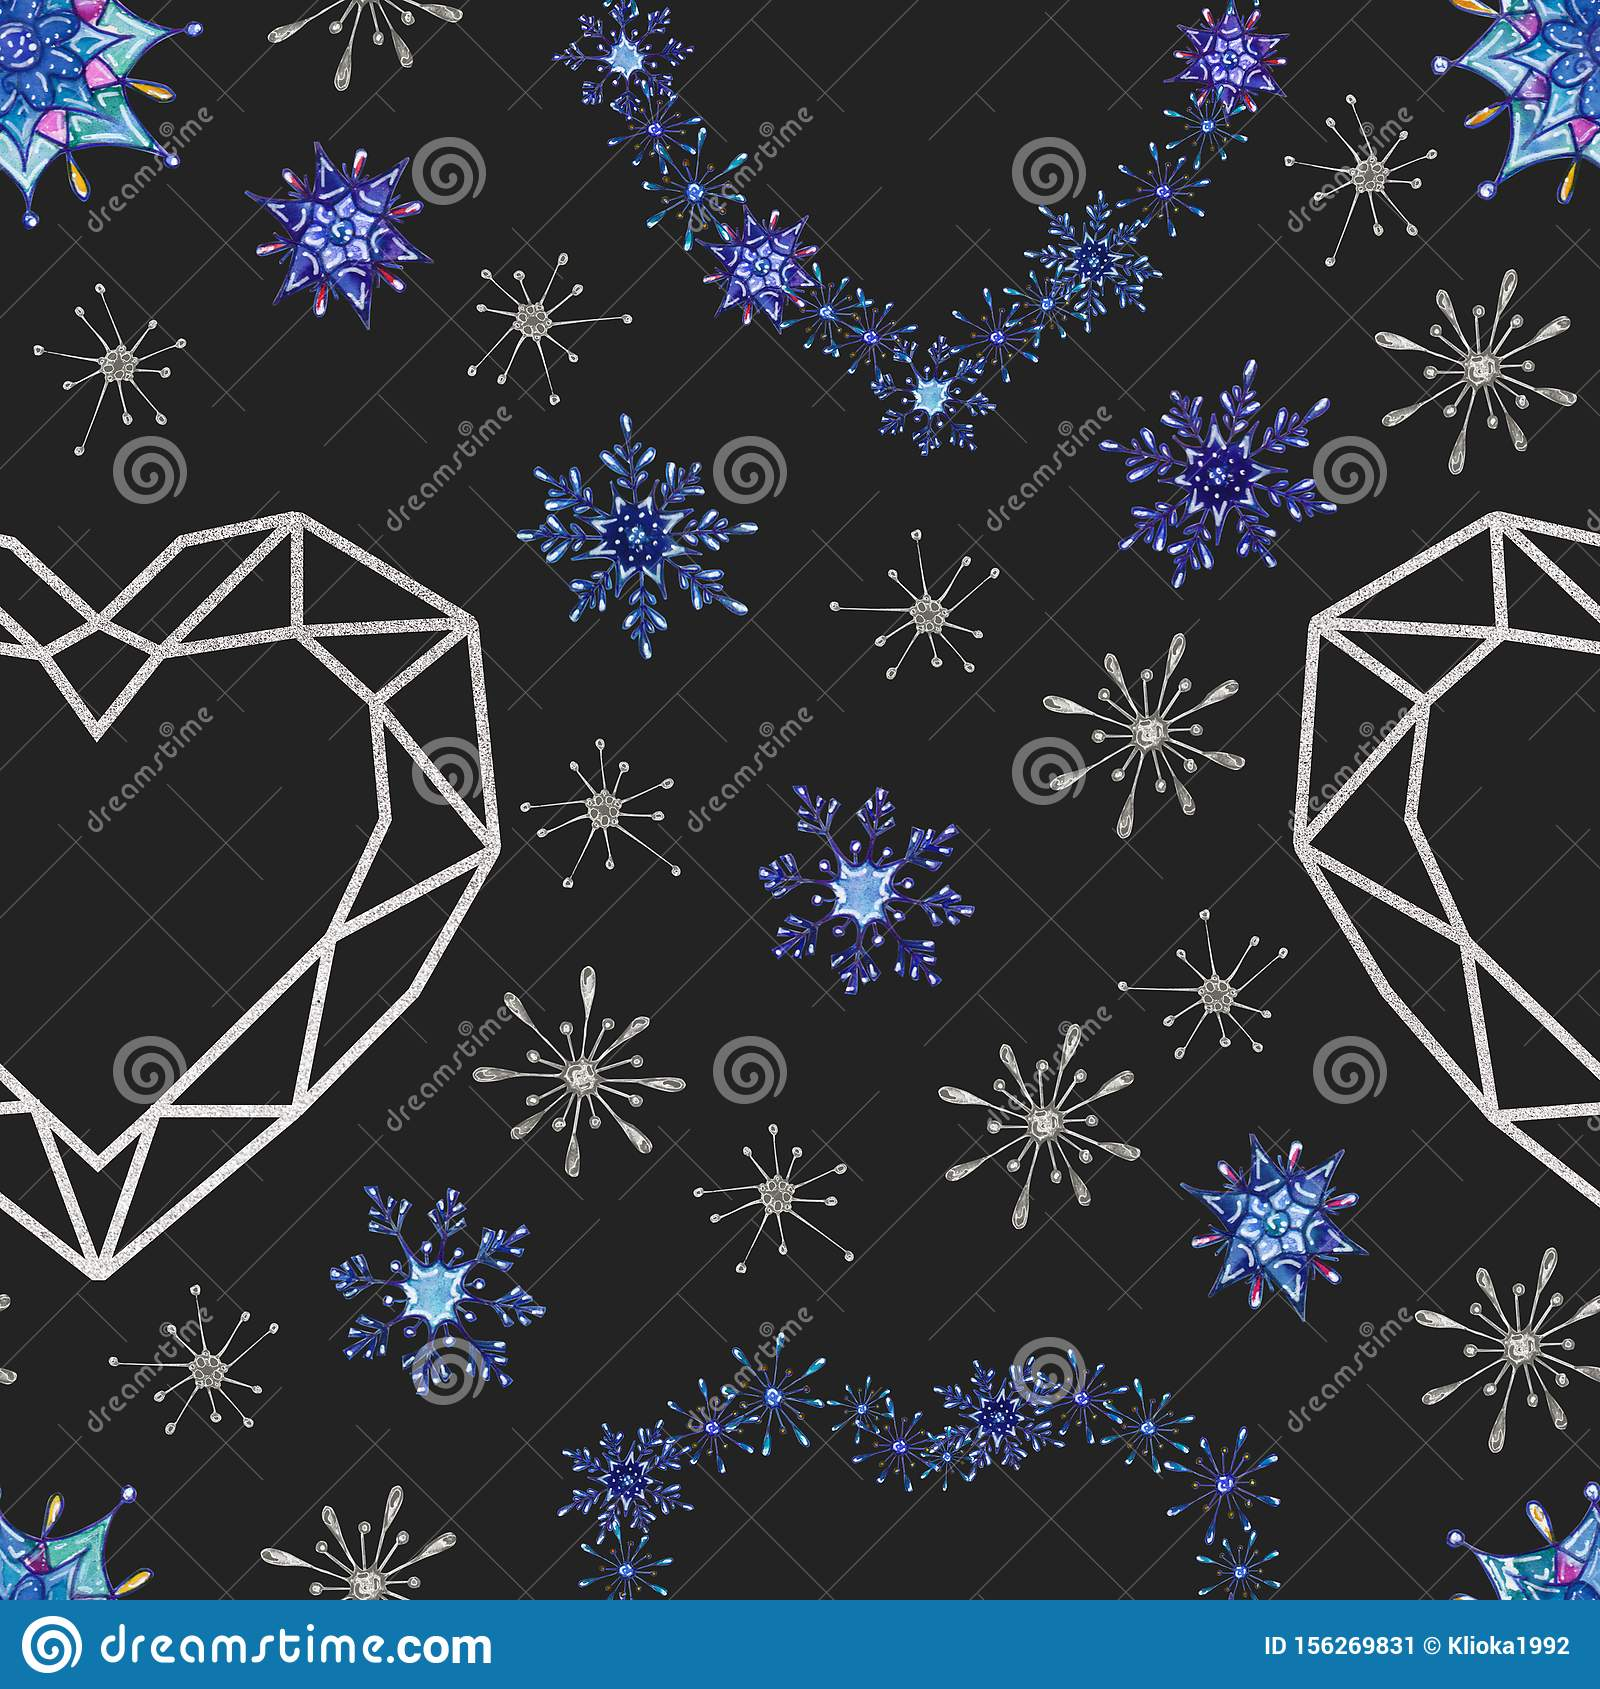 Hand painted Christmas watercolor snowflakes seamless pattern.